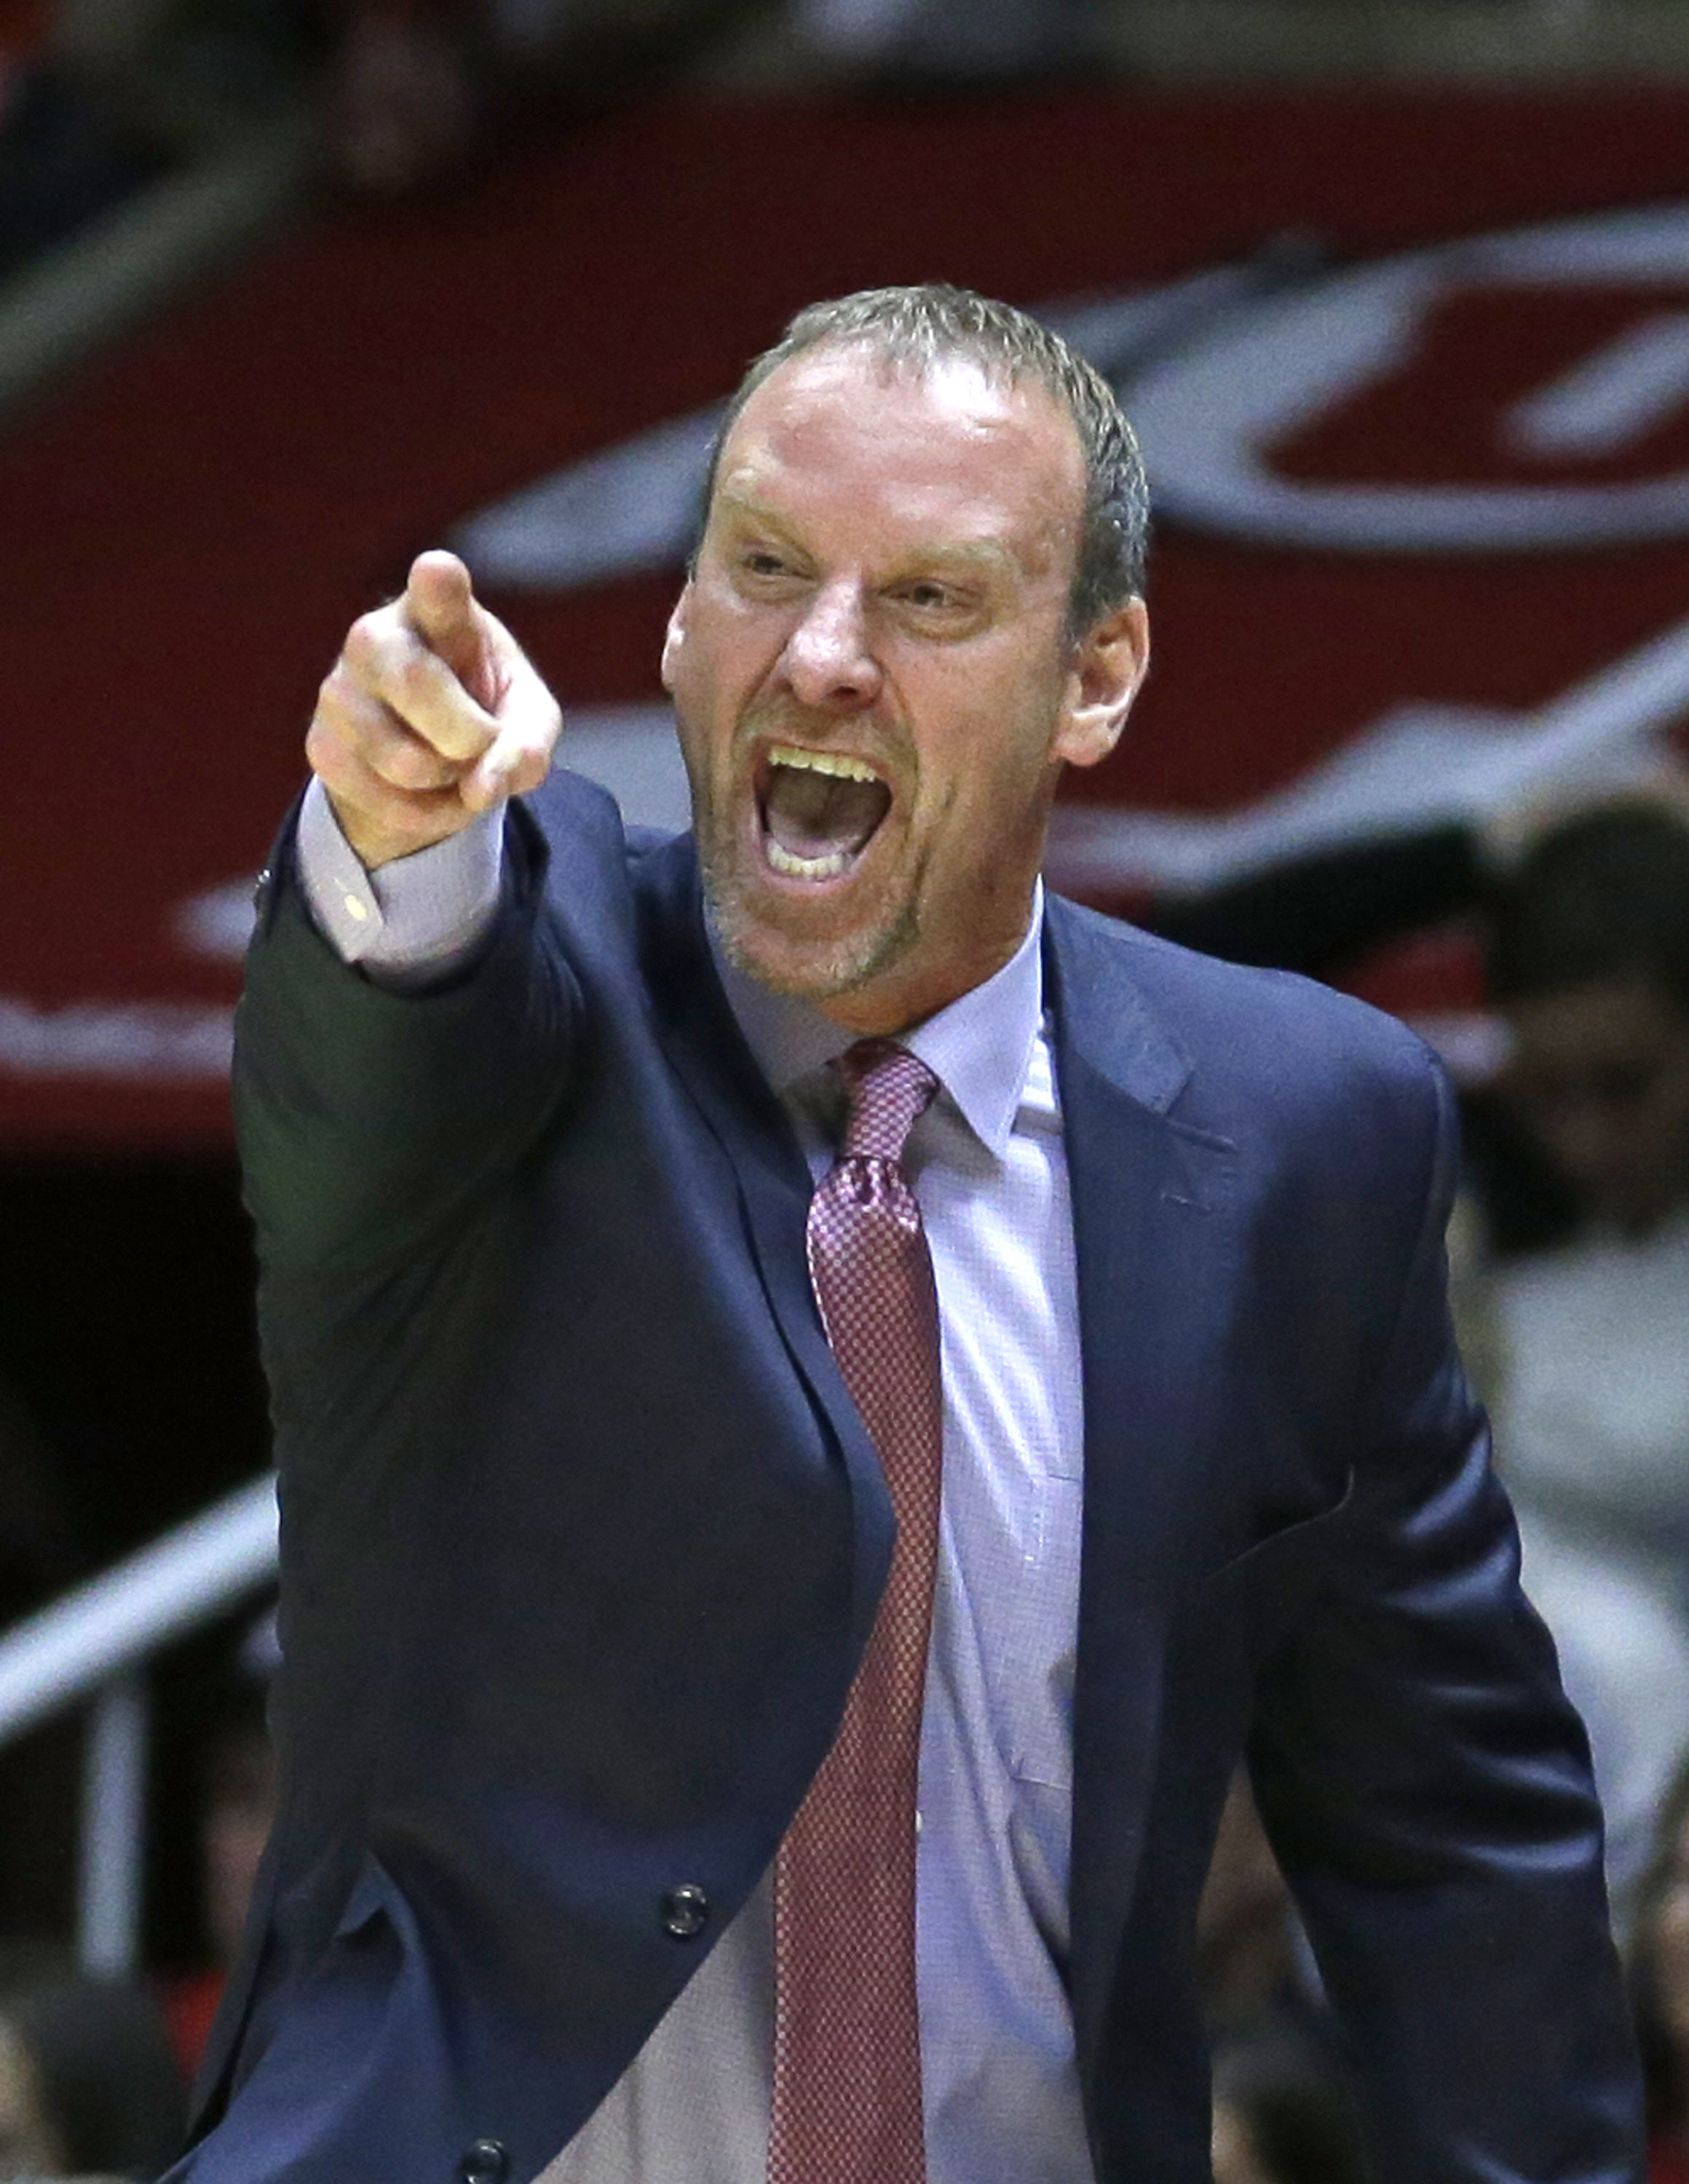 FILE - In this Nov. 13, 2015, file photo, Utah coach Larry Krystkowiak shouts to his team during the second half of an NCAA college basketball game against Southern Utah, in Salt Lake City. Utah begins play Thursday, Nov. 19 in the Puerto Rico Tipoff, whi